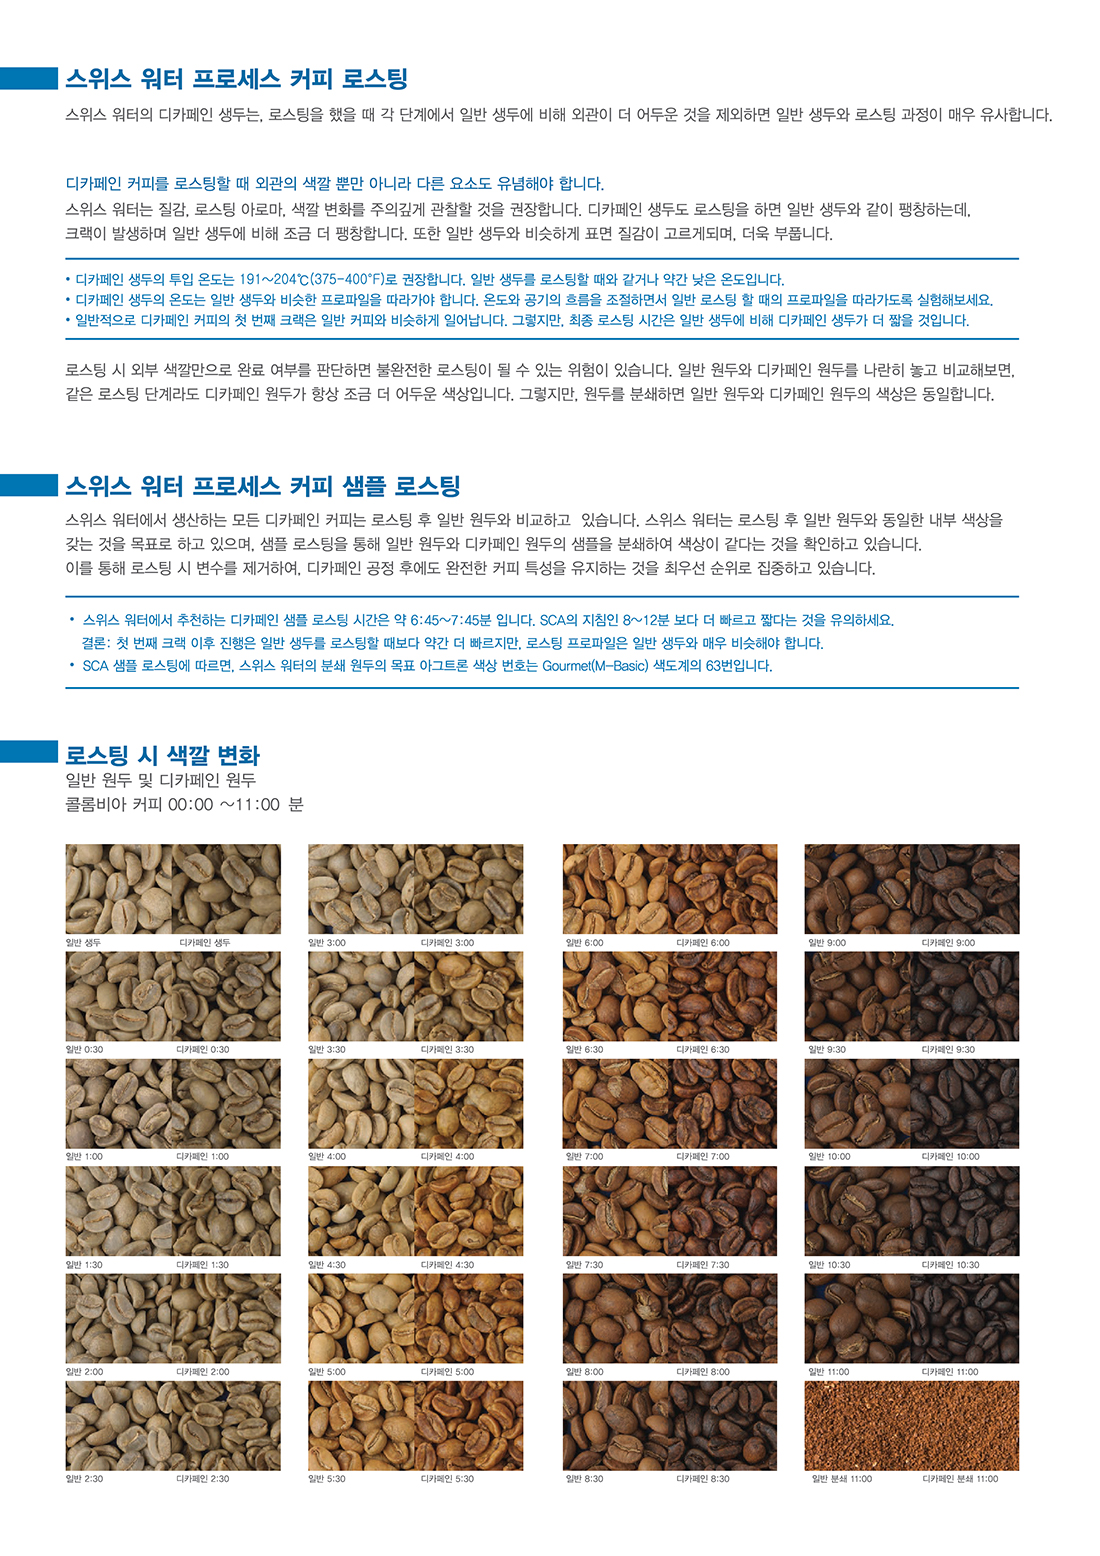 SW-Korean-Brochure_1100_102812.jpg